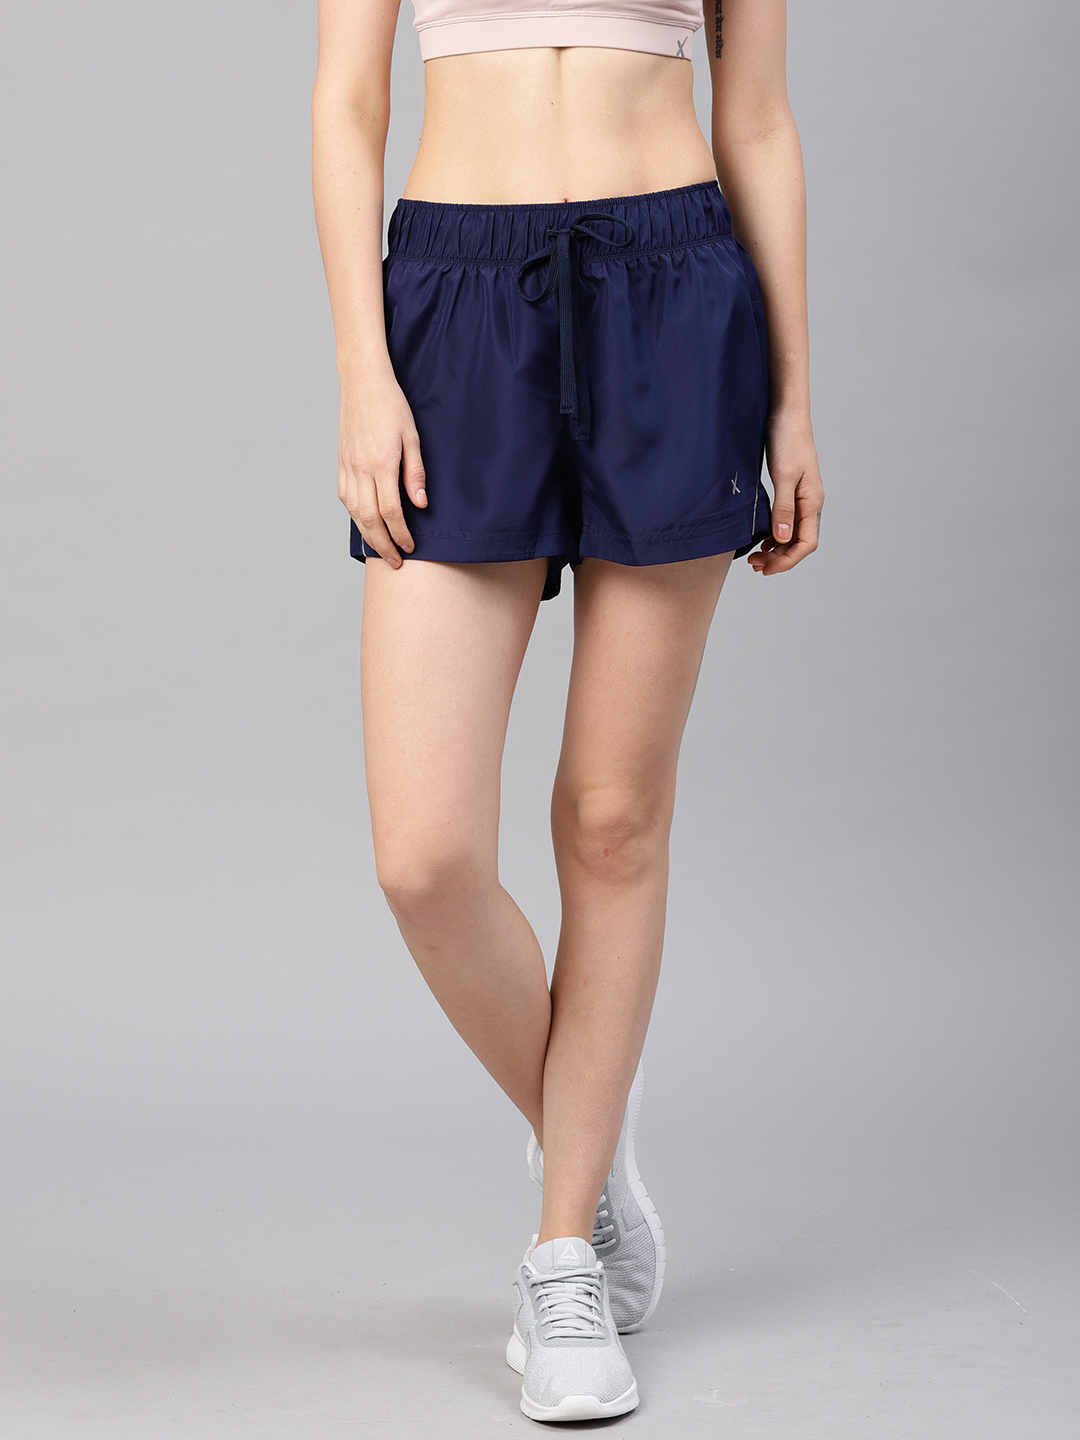 HRX by Hrithik Roshan Women Blue Solid Regular Fit Regular Shorts Price in India